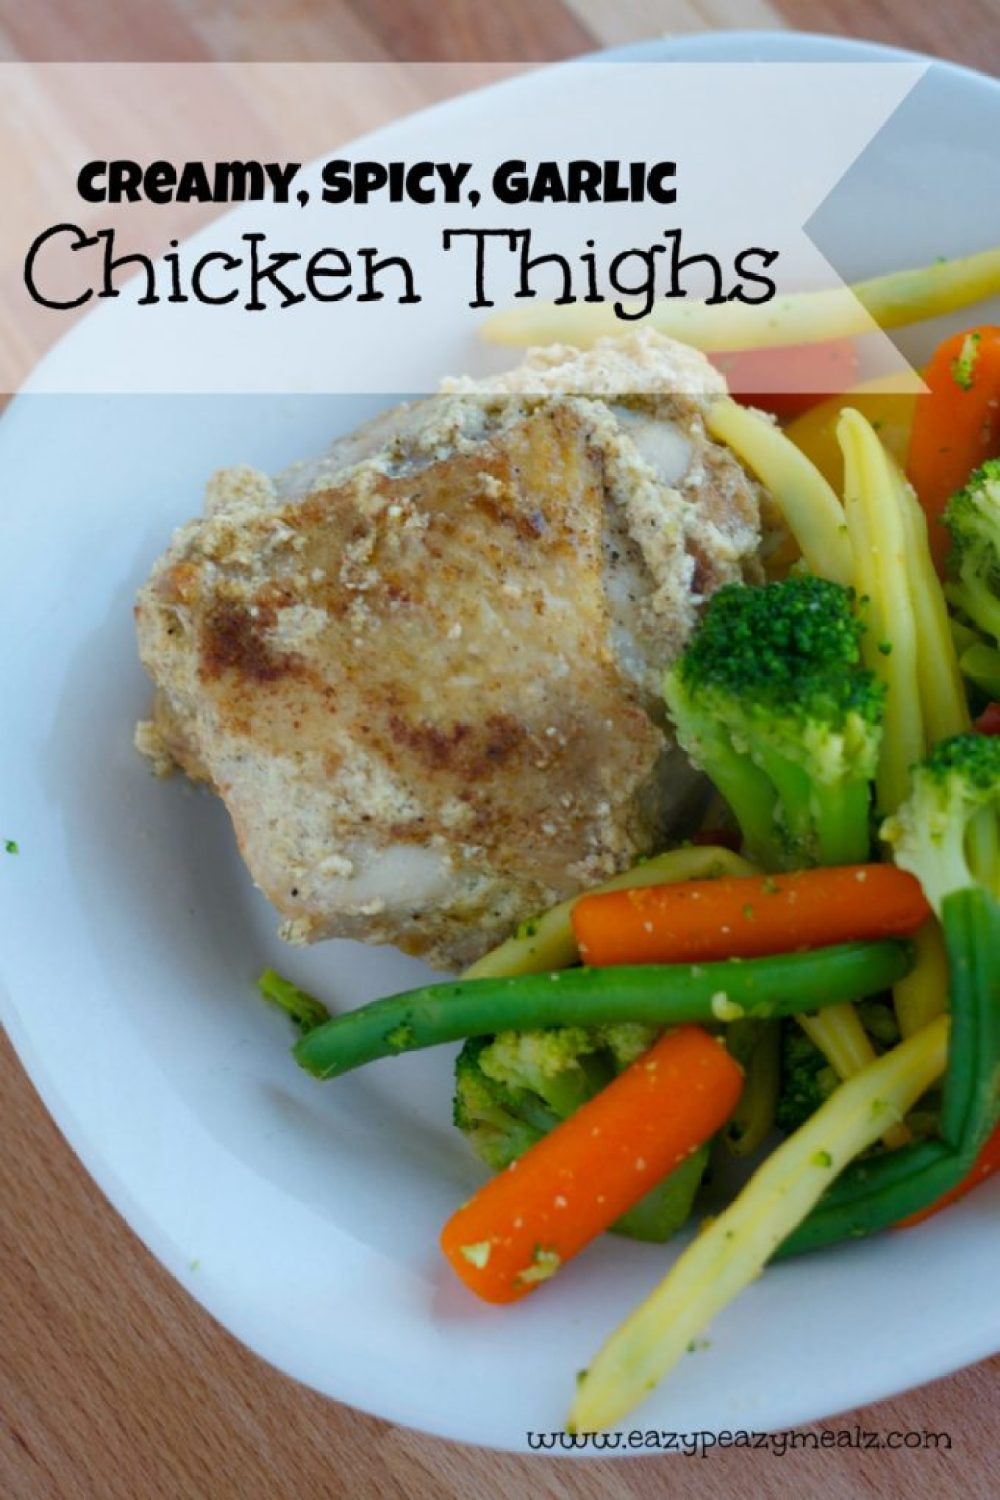 creamy, spicy, garlic chicken thighs